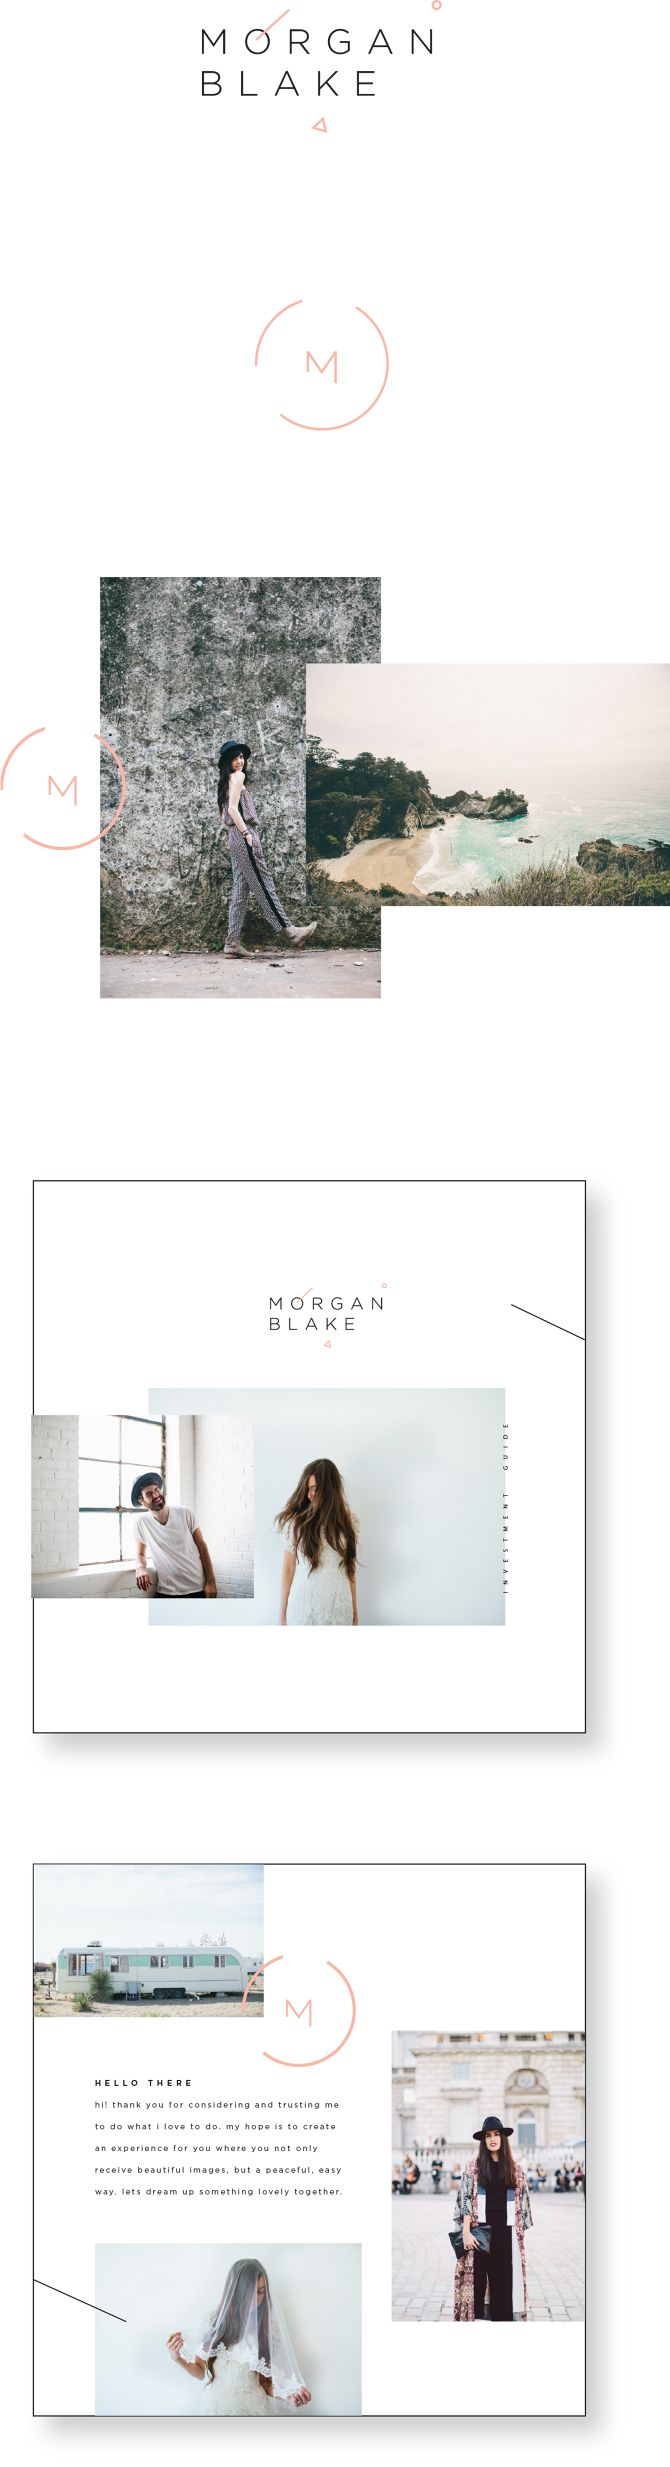 Moe Blake - LIZ DESIGNS THINGS | the portfolio of liz grant